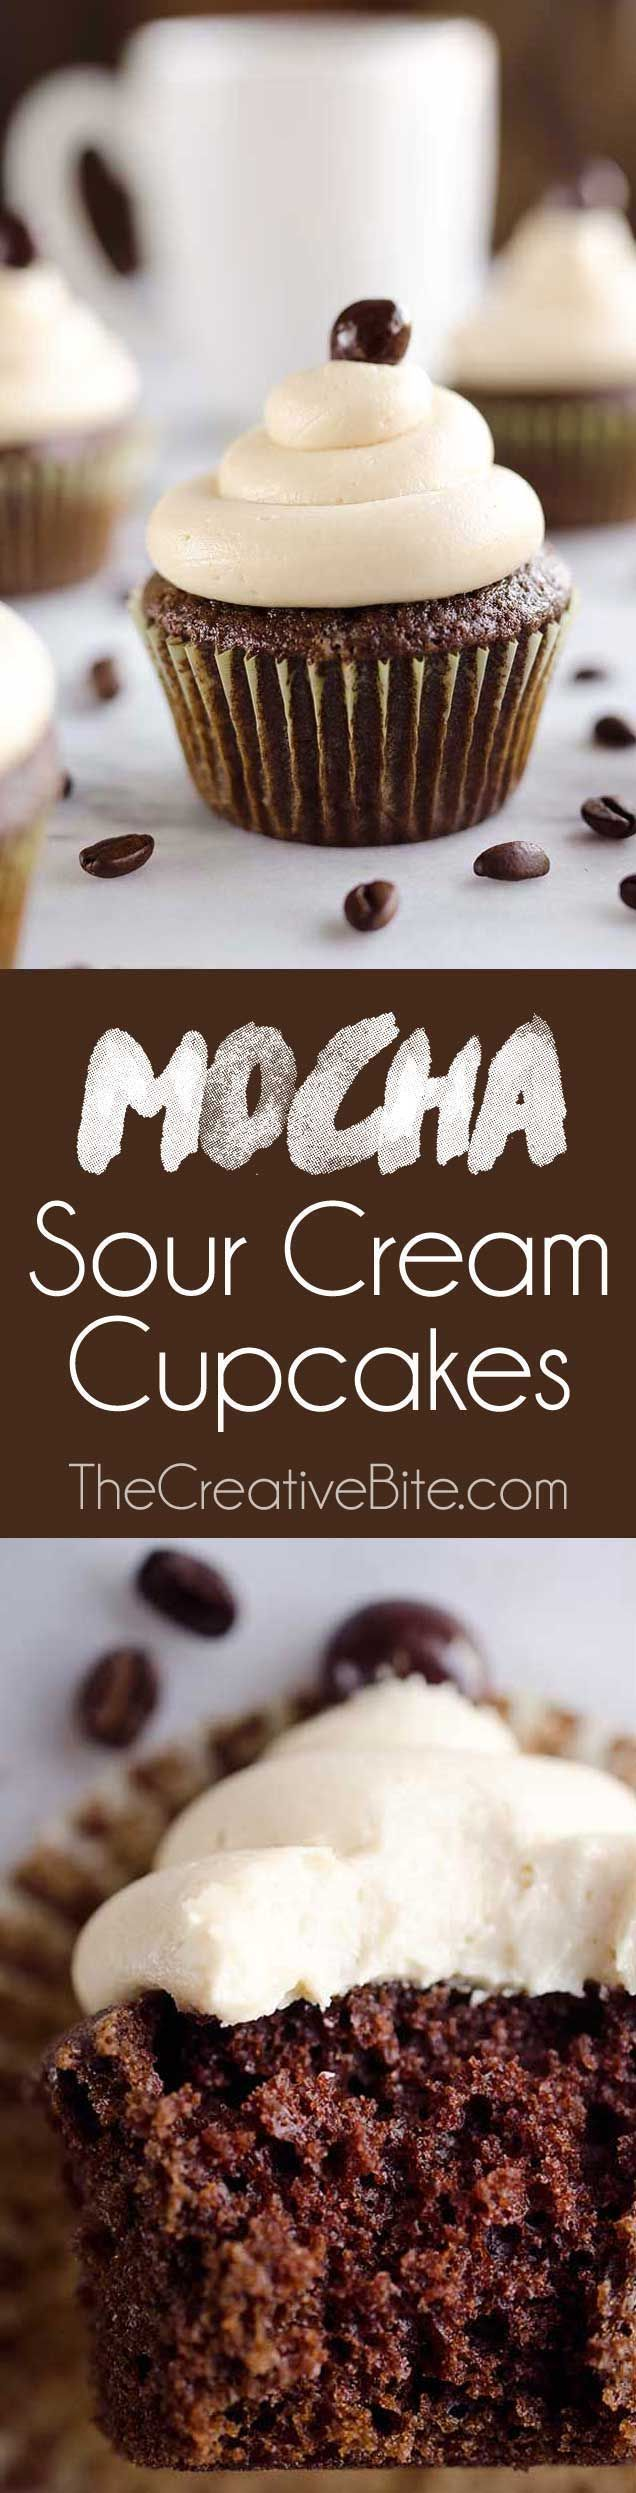 ... cupcakes sweets cupcakes cream cupcakes recipes cupcakes cupcakes